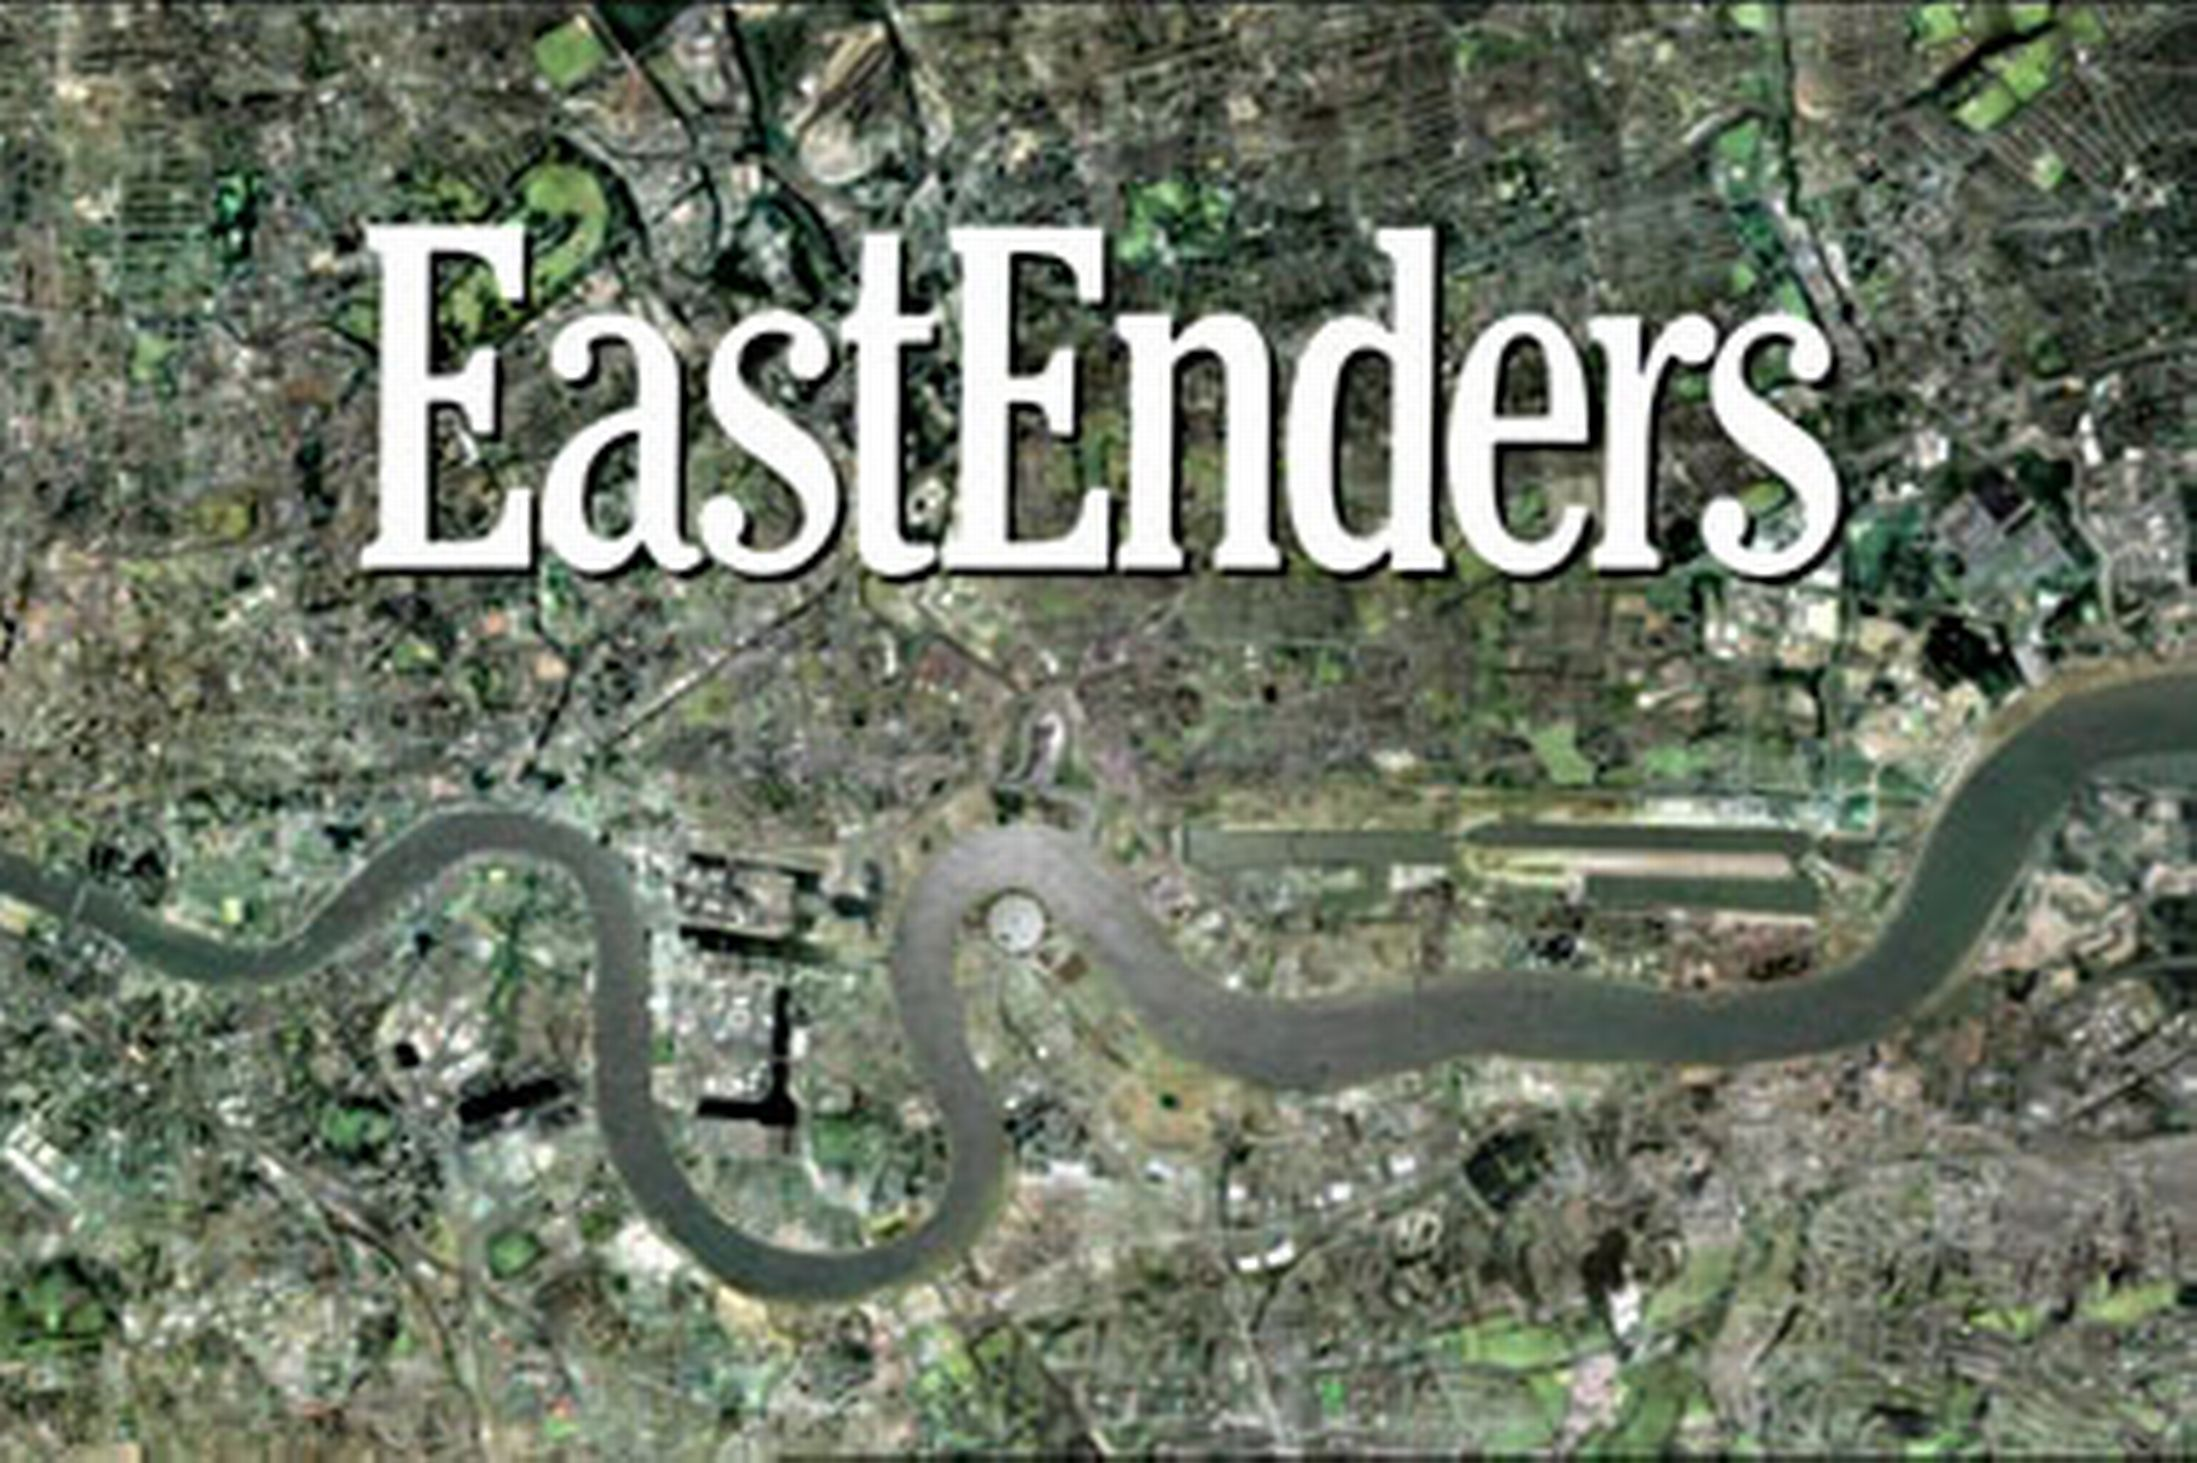 DAVID FINCHER PLANS EASTENDERS FOR HBO